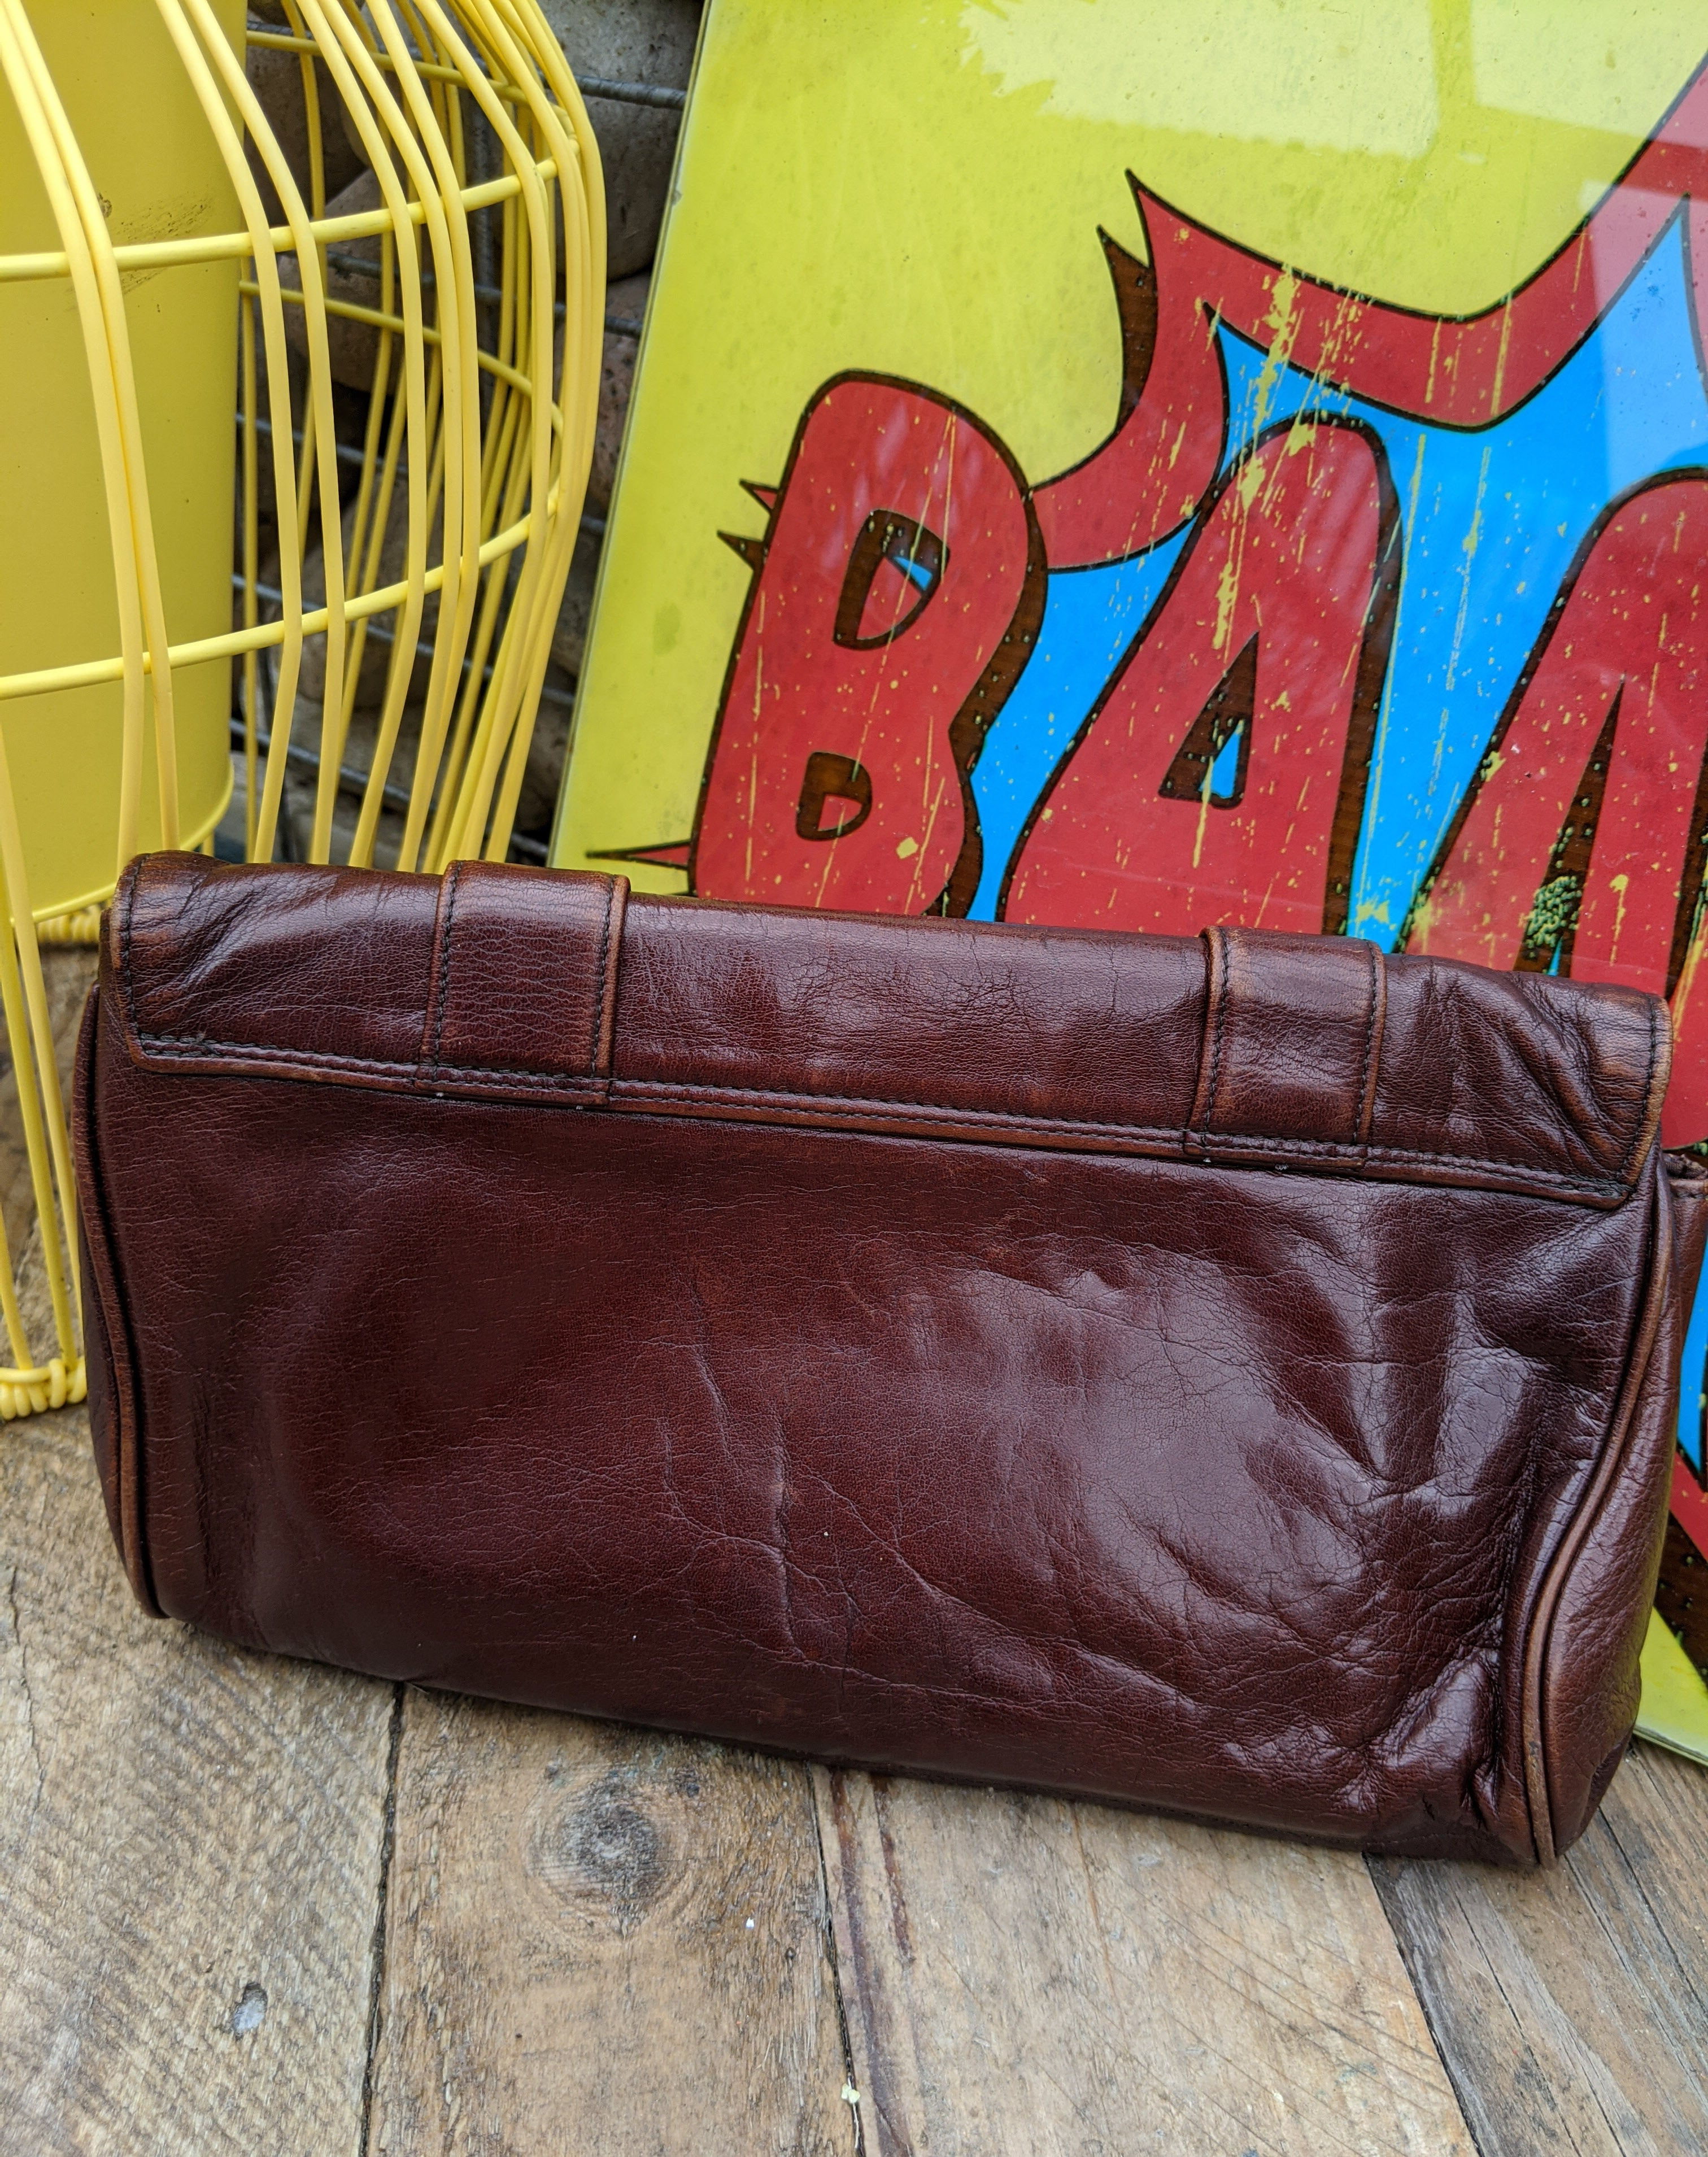 70s chestnut brown leather clutch bag